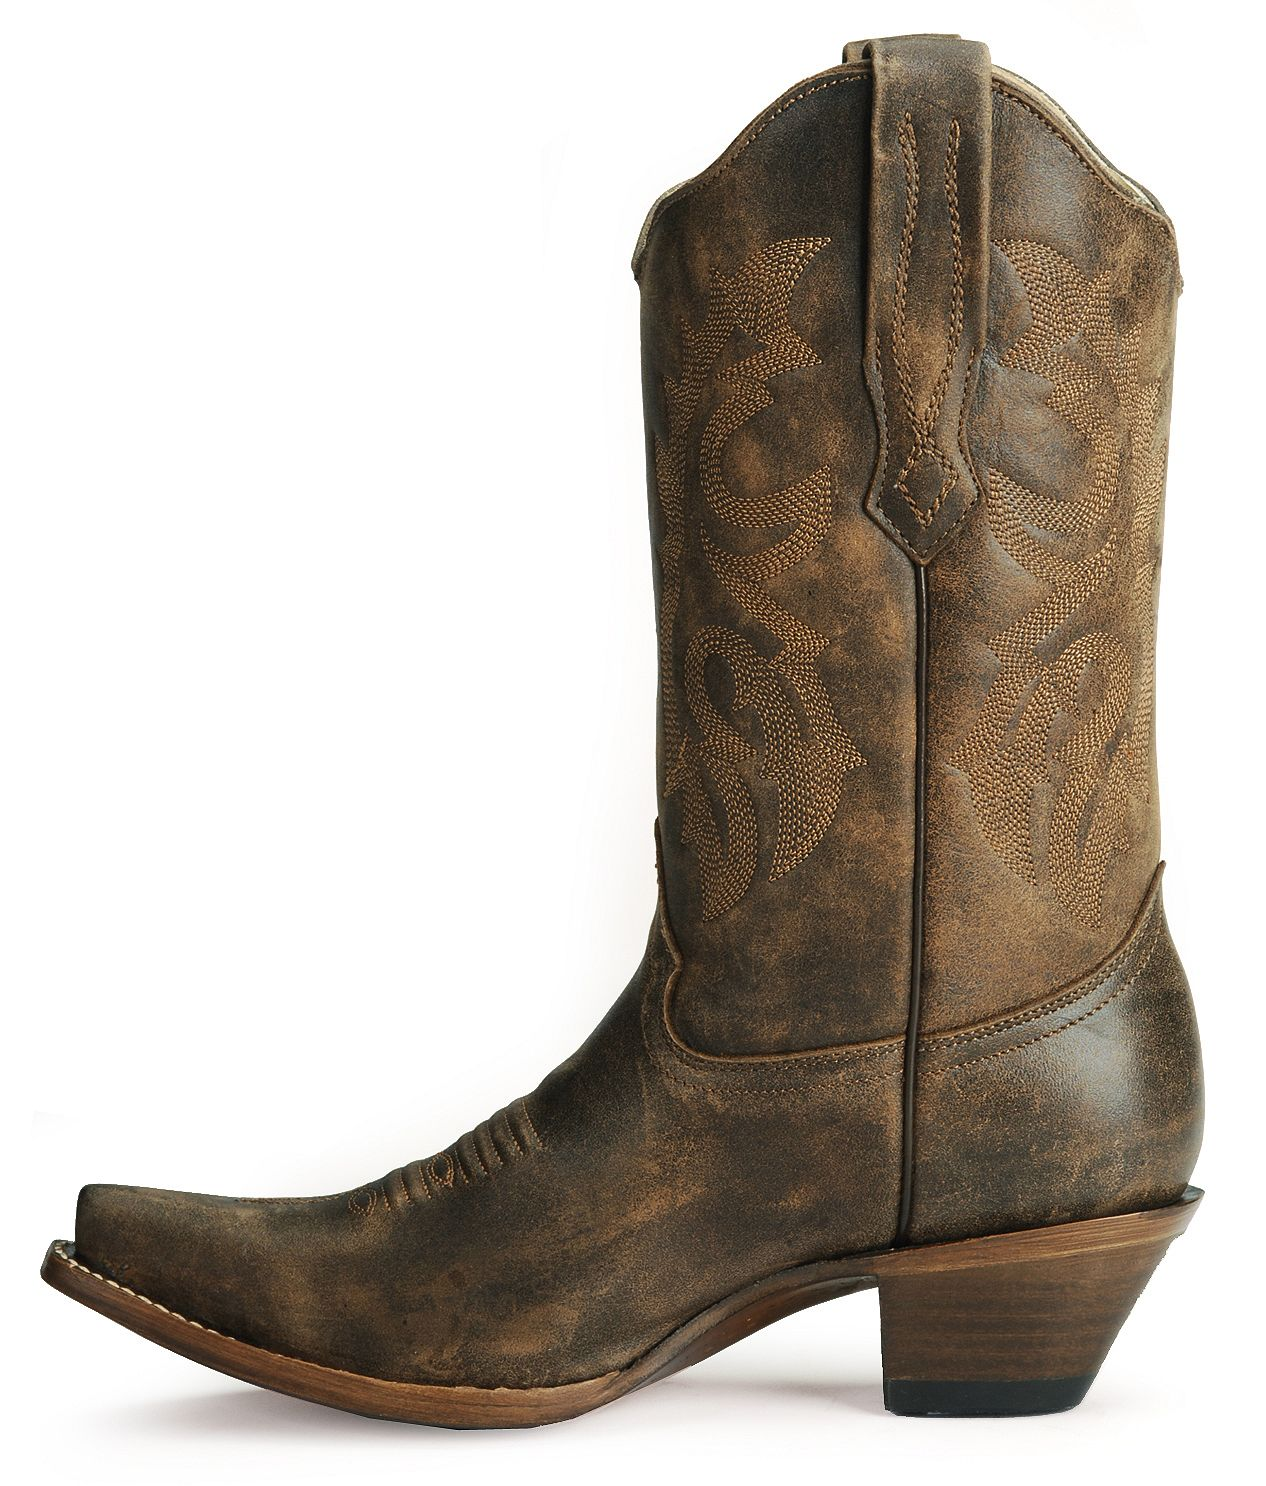 Corral Distressed Leather Western Cowgirl Boots